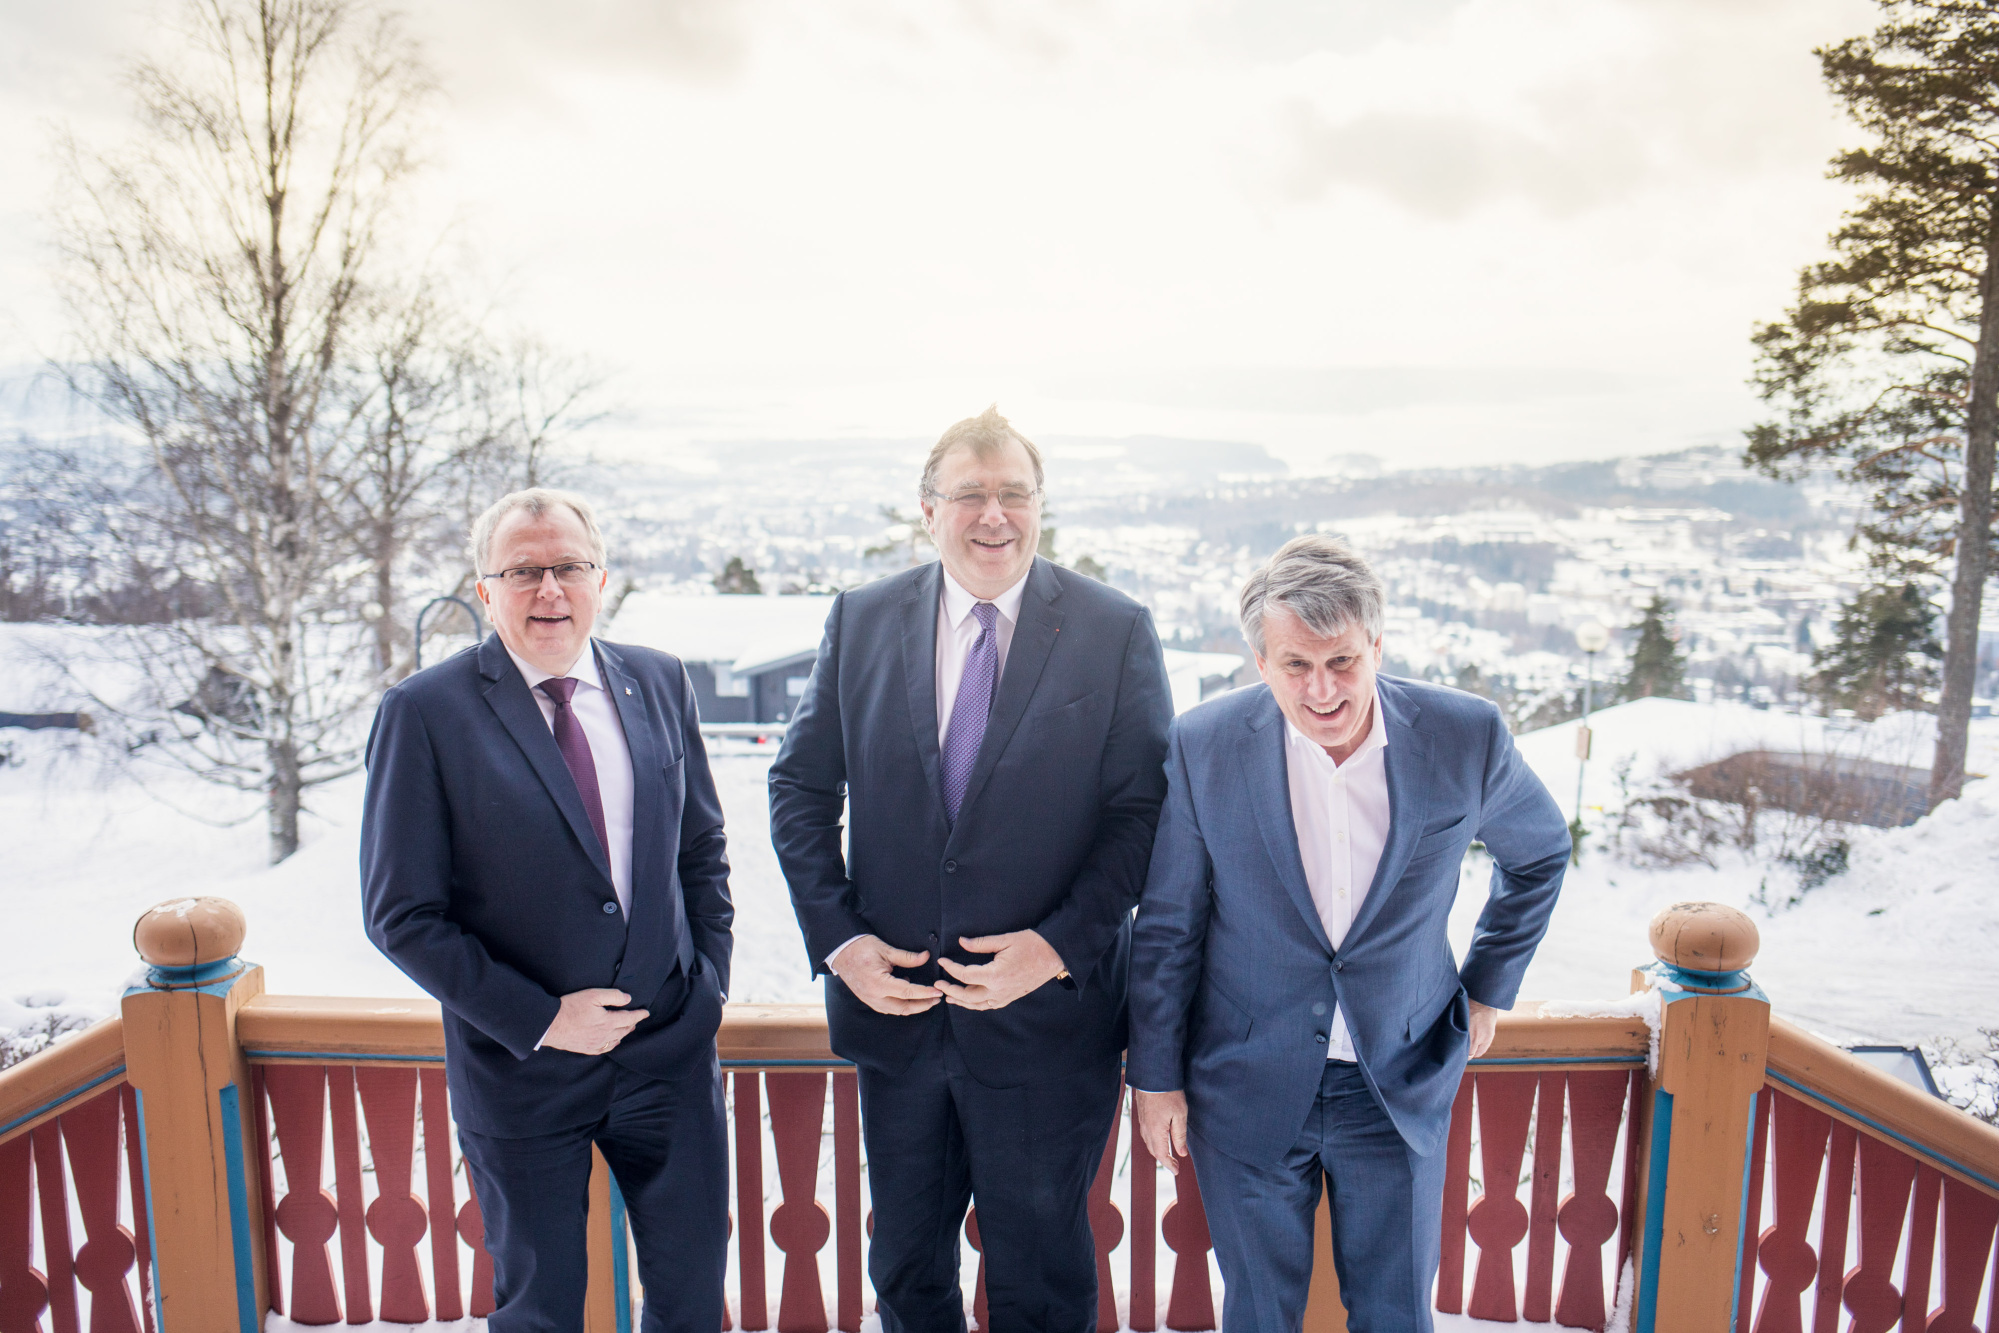 Eldar Saetre, chief executive officer of Statoil ASA, left, Patrick Pouyanne, chief executive officer of Total SA, center, and Ben van Beurden, chief executive officer of Royal Dutch Shell Plc, pose for a photograph following an interview on the sidelines of an energy conference in Oslo, Norway, on Thursday, Feb. 15, 2018. The bosses of three of the world's biggest oil companies gathered on the sidelines of an energy conference to make the case for a flagship Norwegianproject, in which the companies plan to store CO2 emissions under the North Sea after they've been shipped and piped from onshore industrial plants. Photographer: Kyrre Lien/Bloomberg